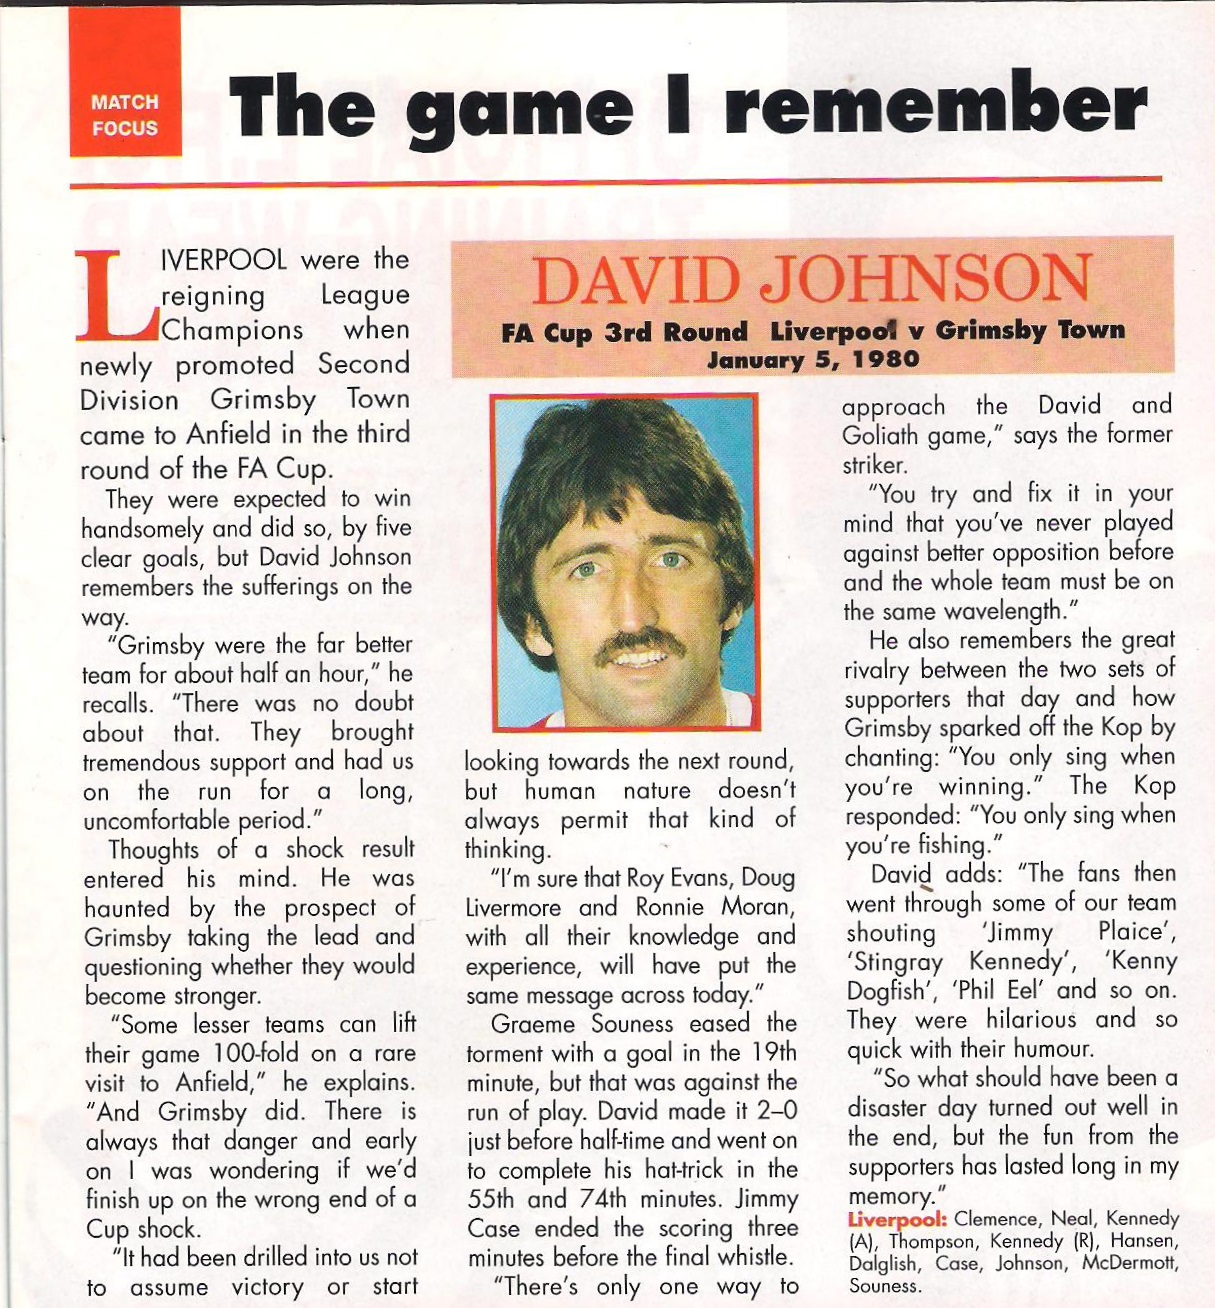 Johnson recollects a game against Grimsby on 5 January 1980